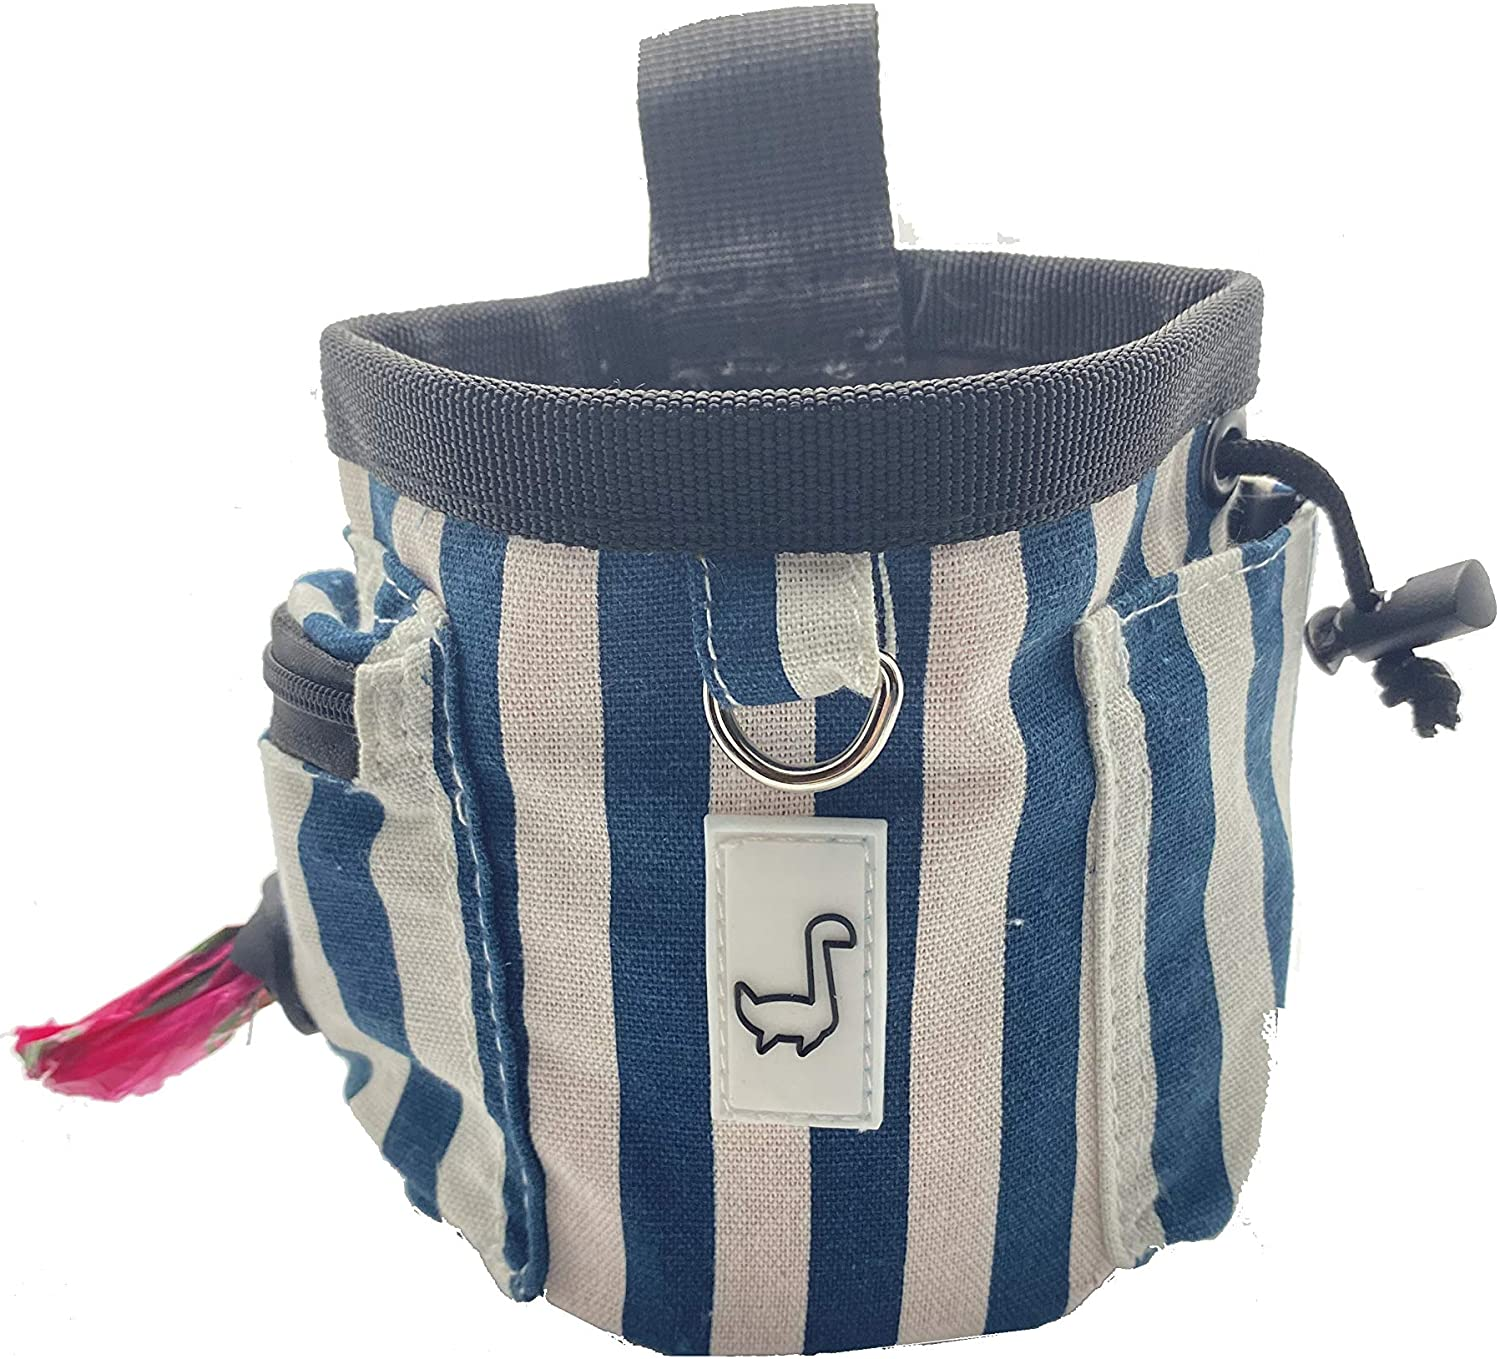 Nessie Goods Dog Training Treat Raleigh Mall Bag Pouch Dogs for Bags trend rank